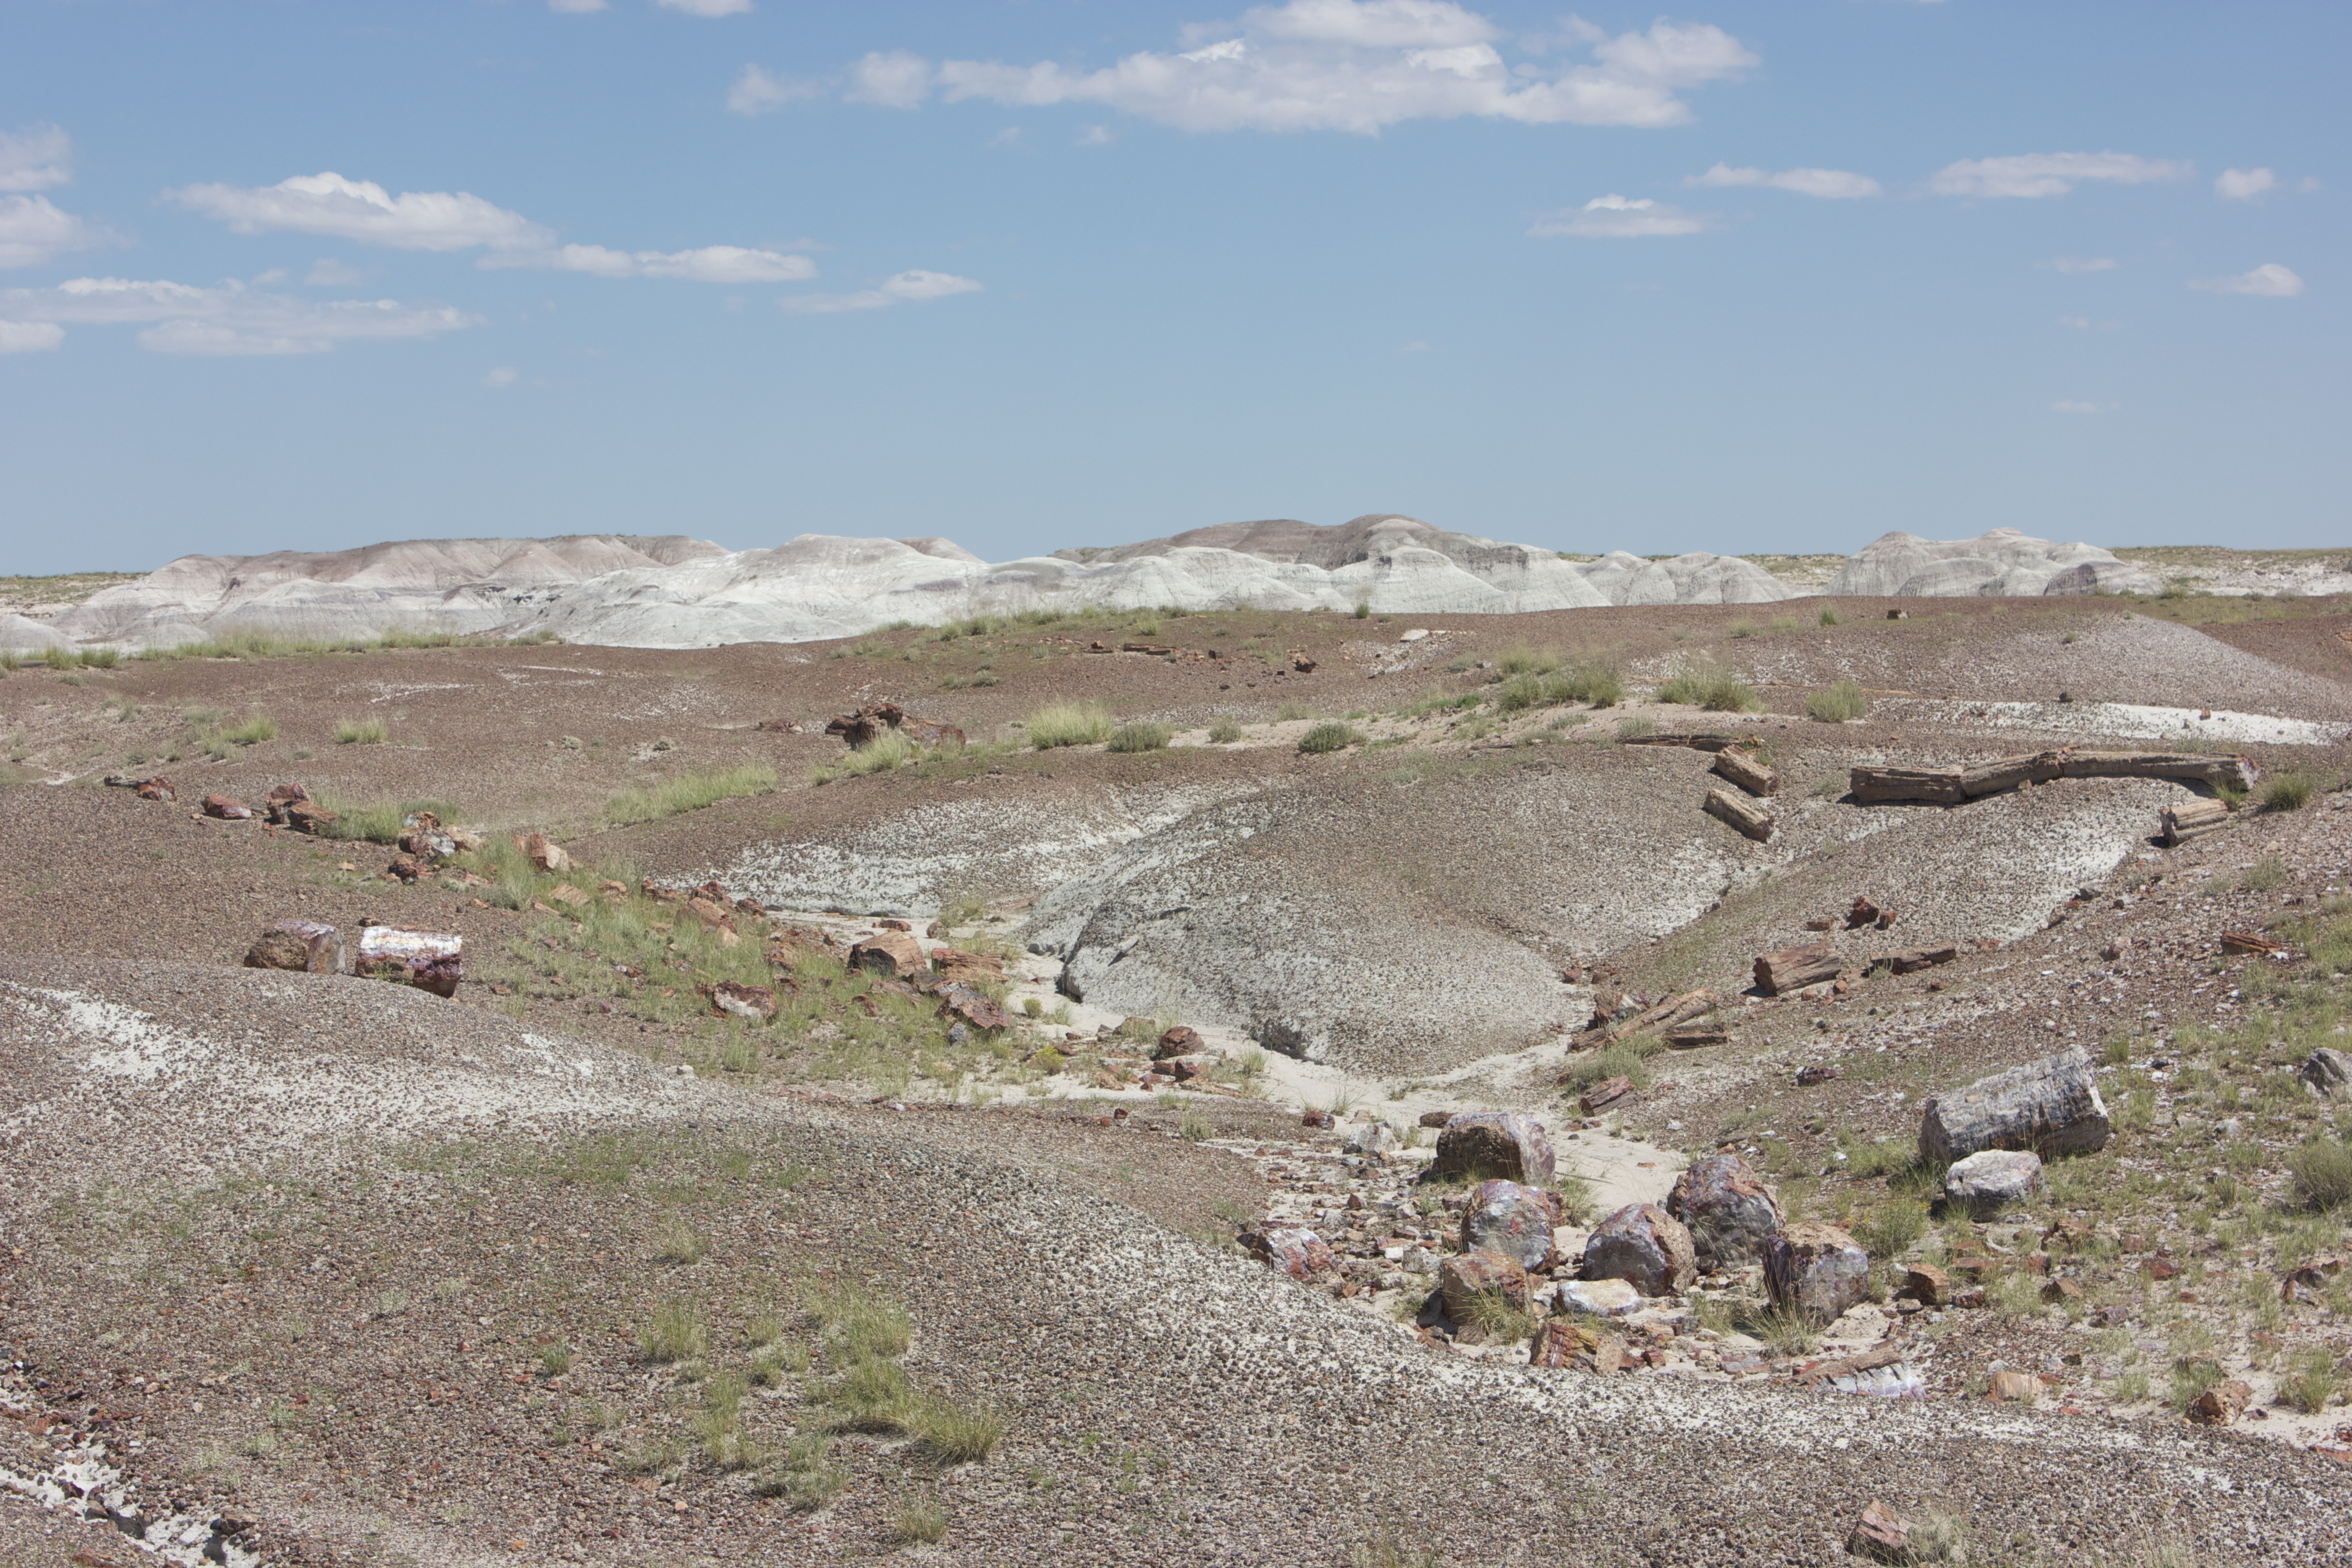 Petrified wood in this desolate landscape has been fossilized and turned to stone.